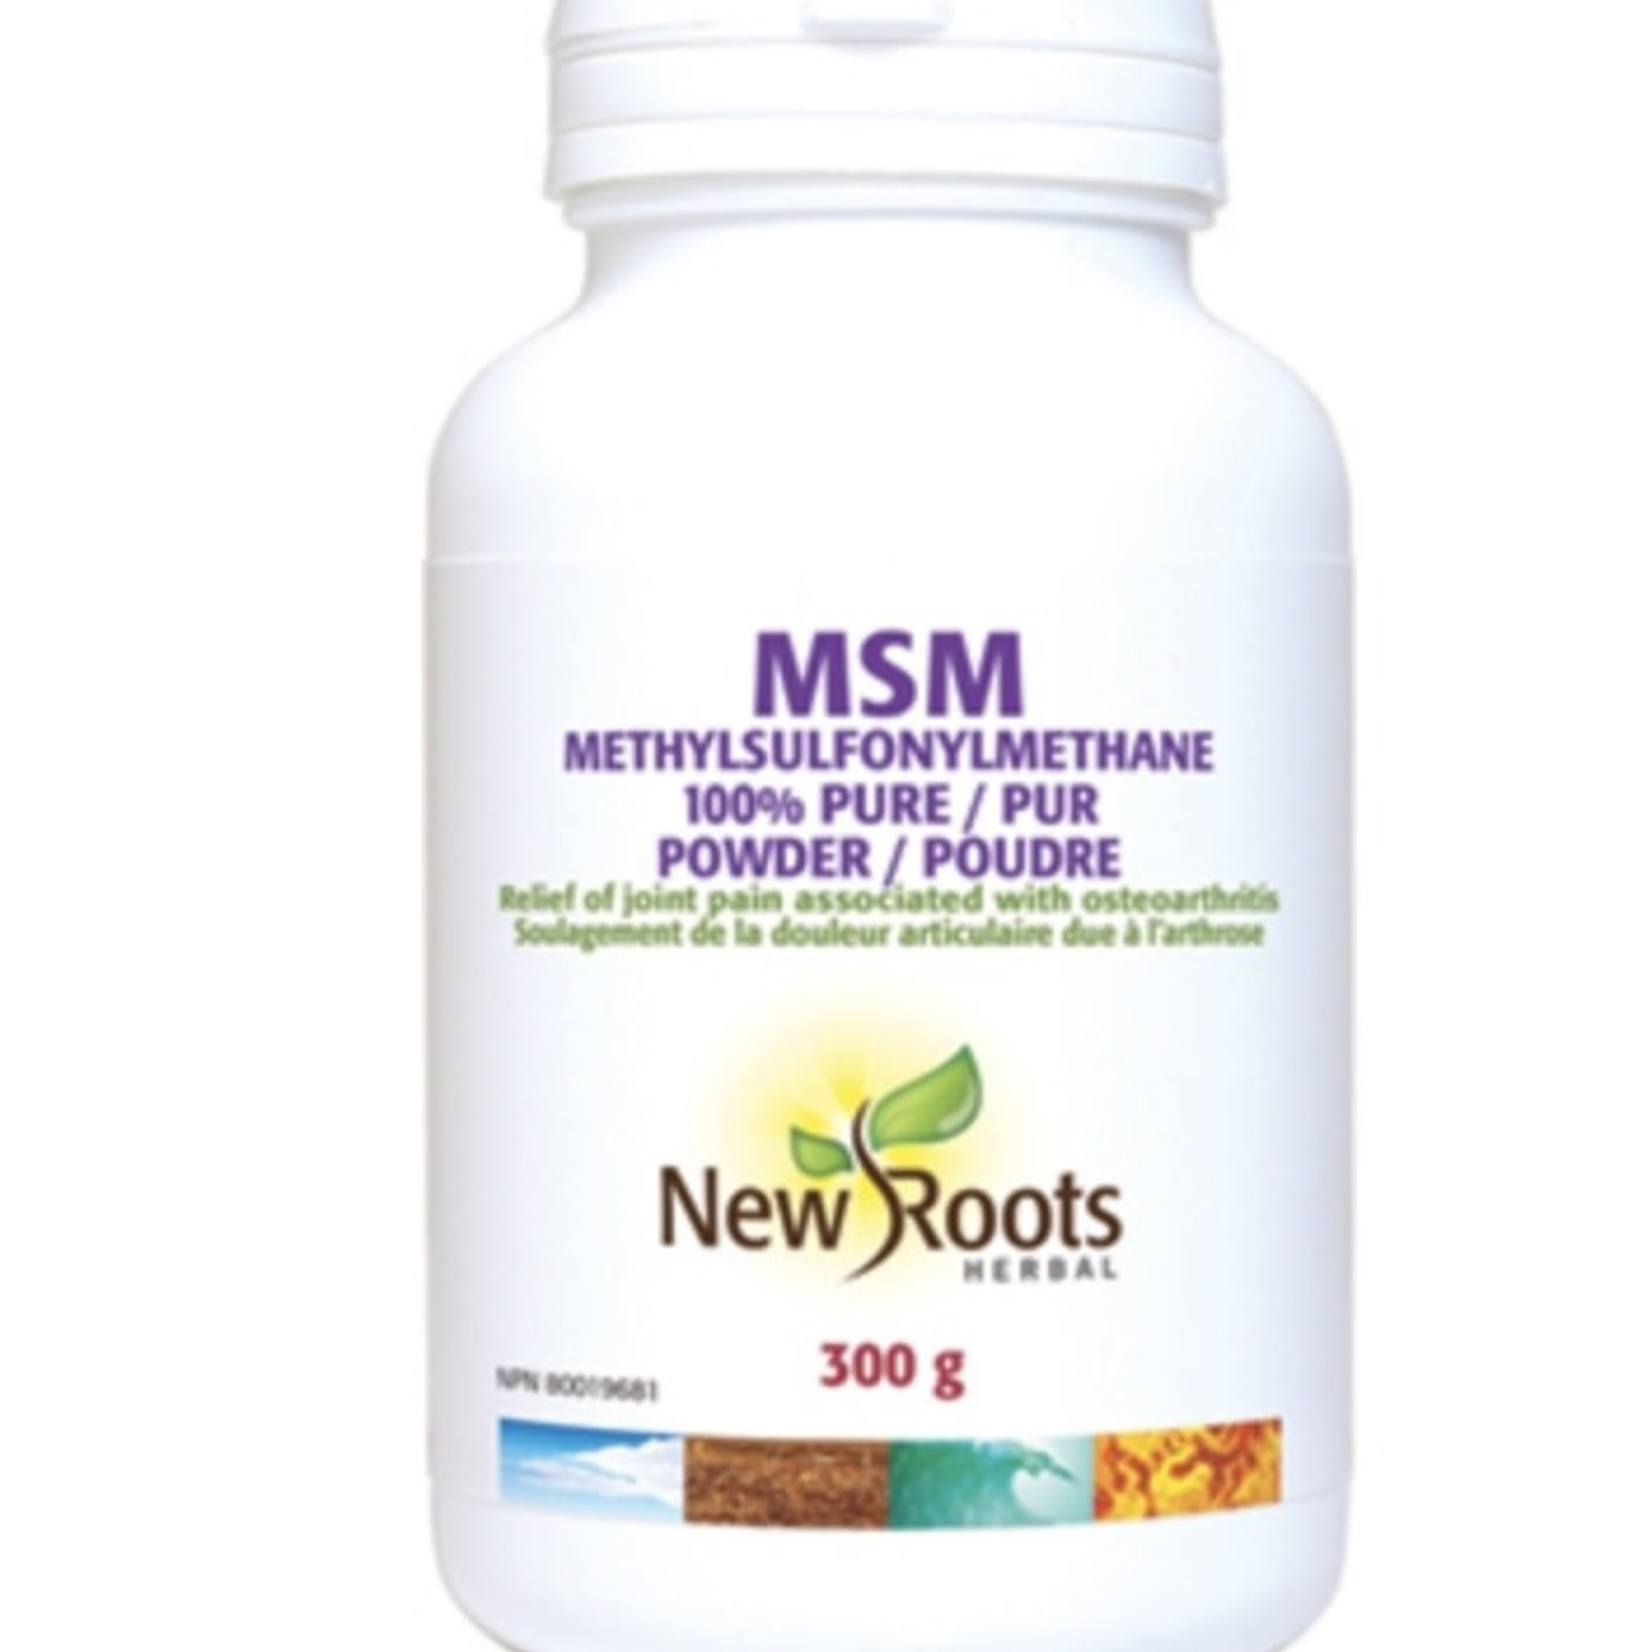 New Roots New Roots MSM 300g